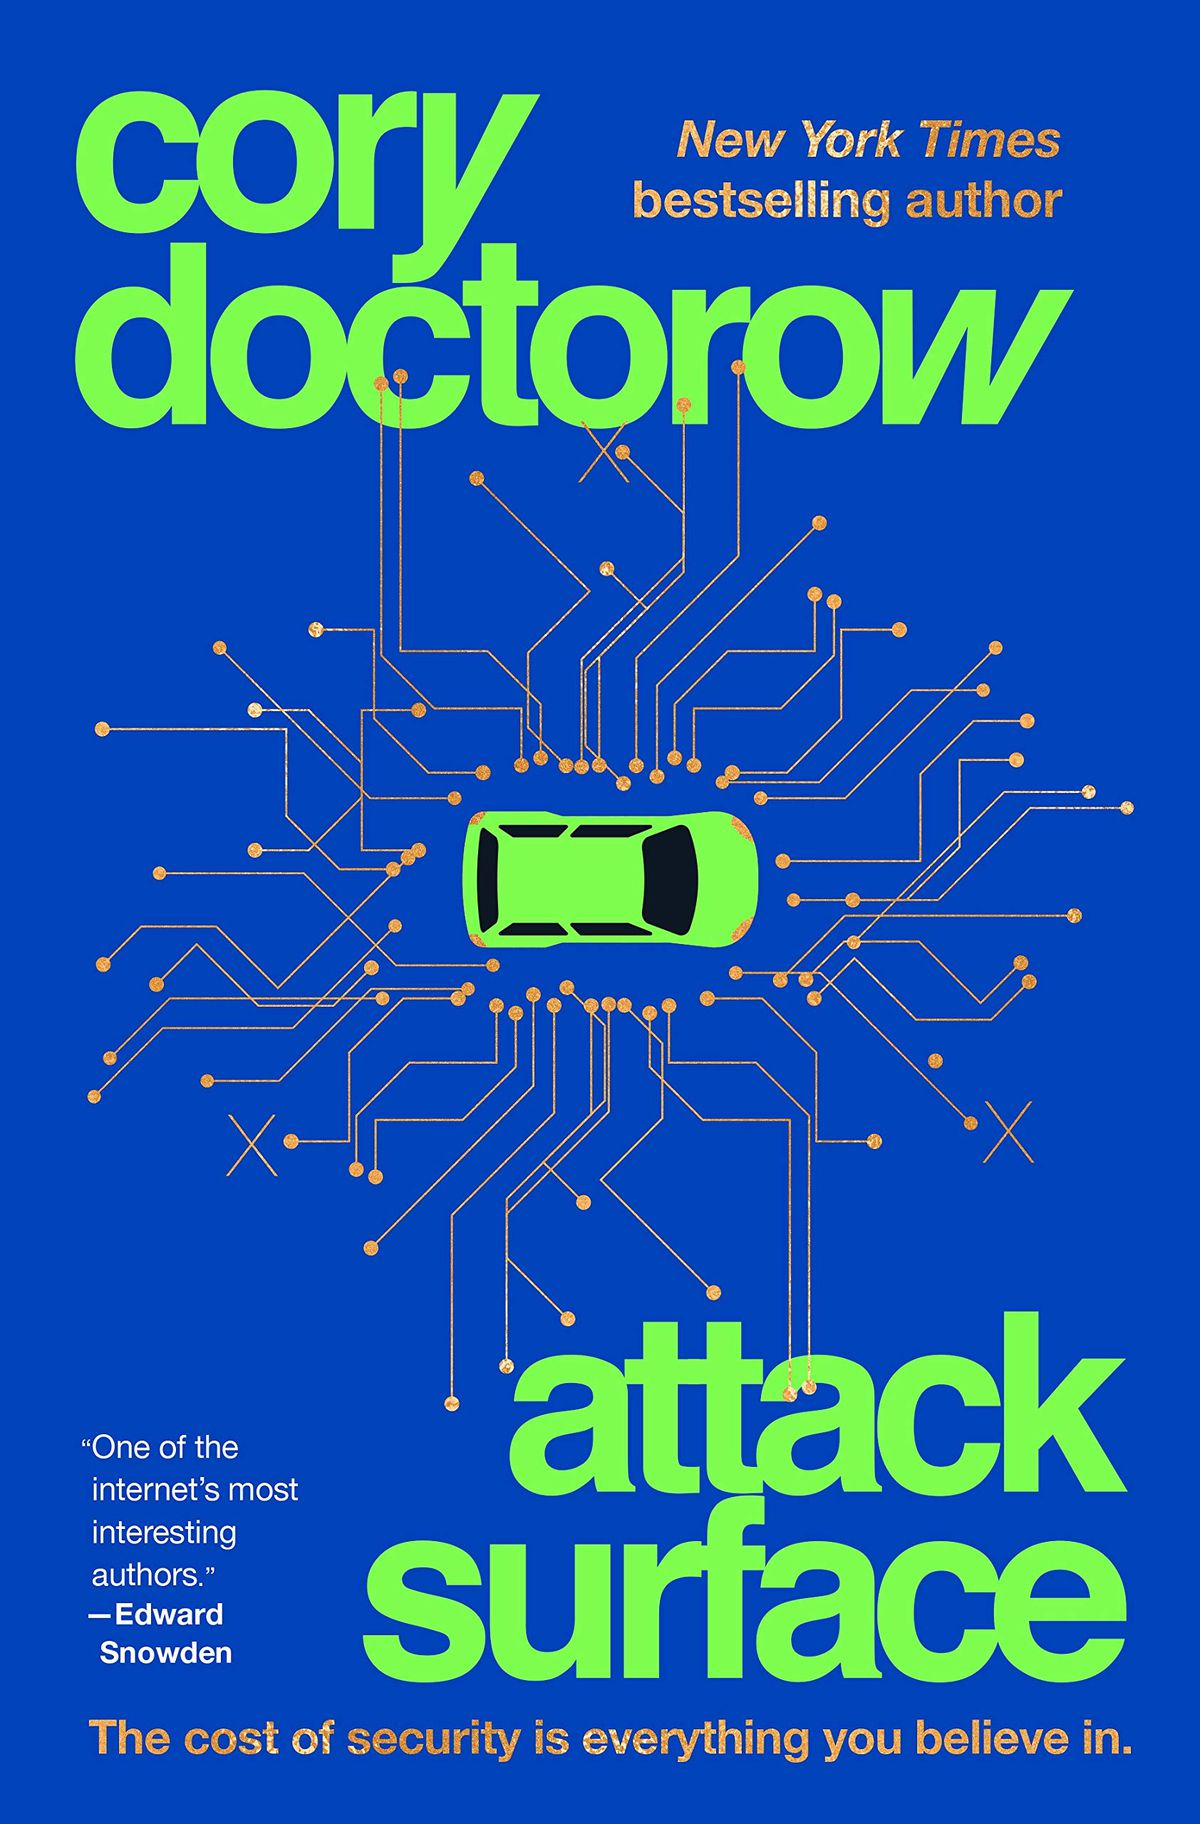 The cover of Cory Doctorow's novel Attack Surface